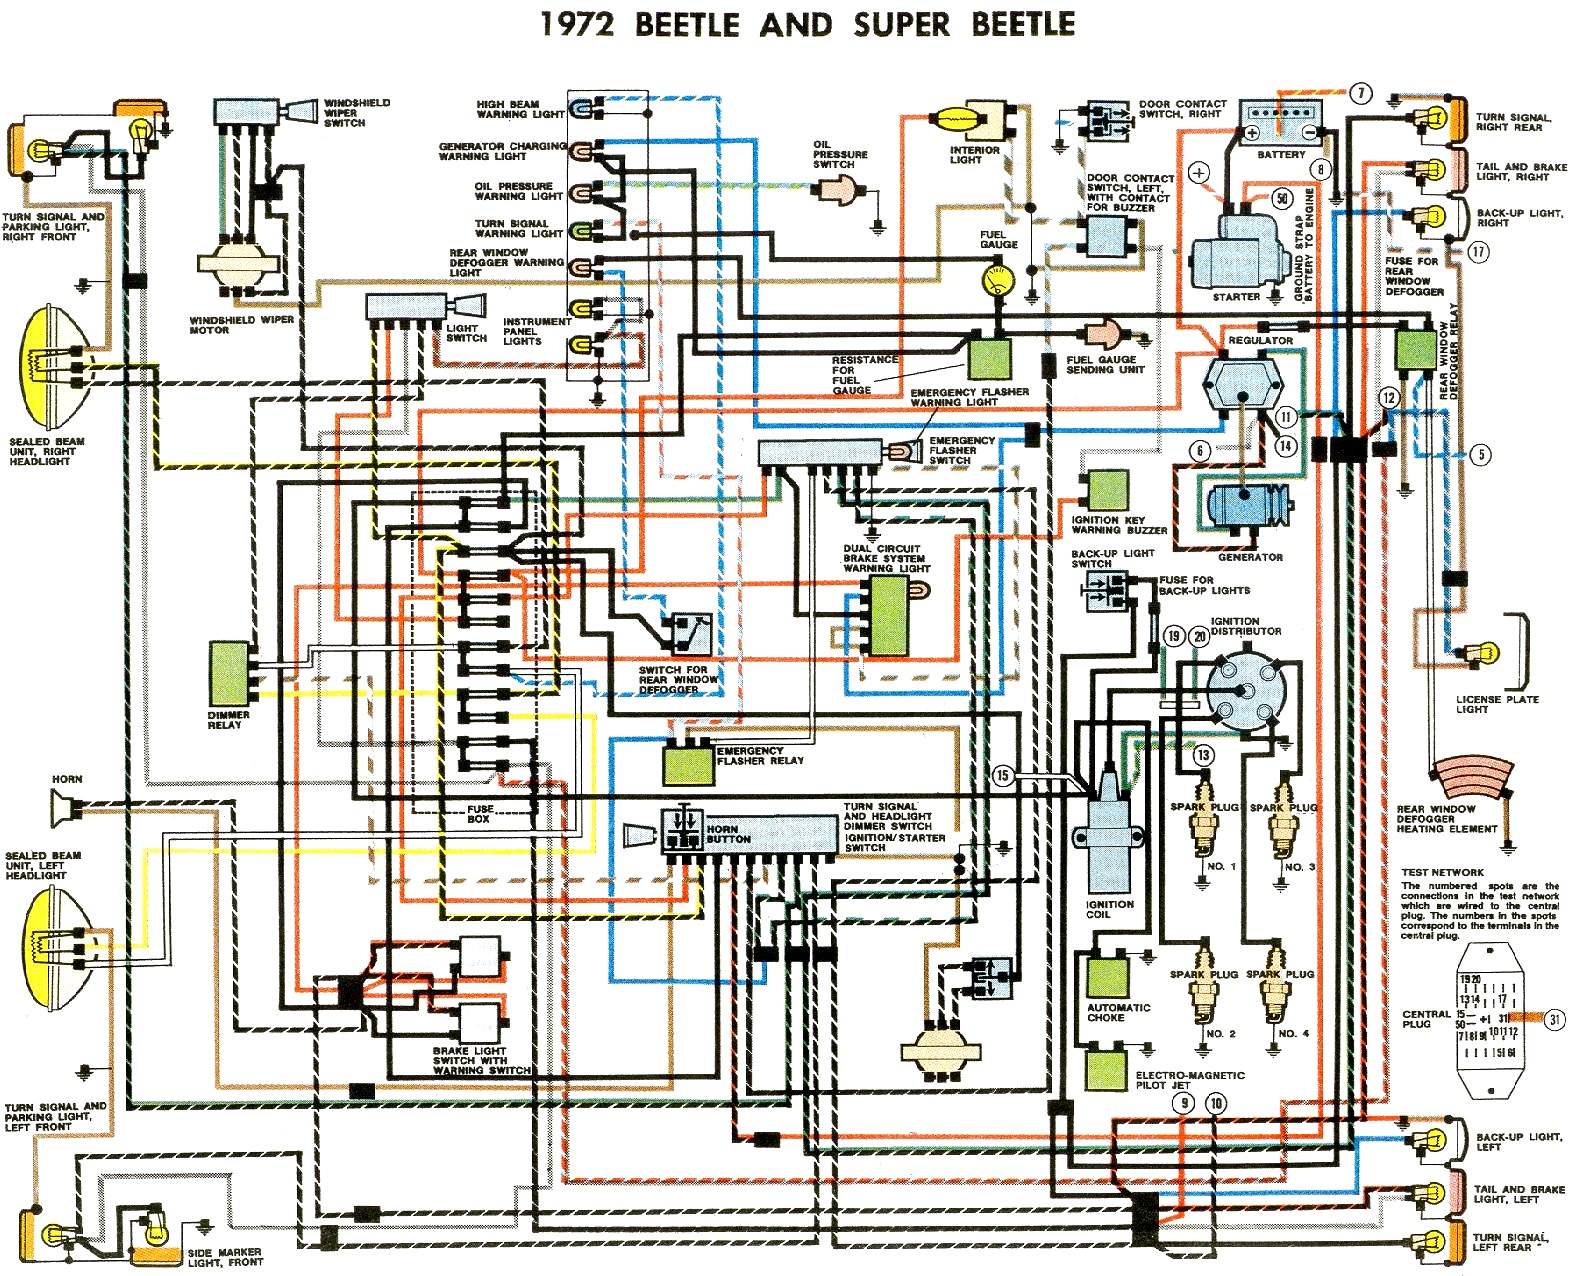 78 Ford Ignition Wiring Diagram Simple Guide About 1978 Wires 1972 Beetle Thegoldenbug Com F250 Switch